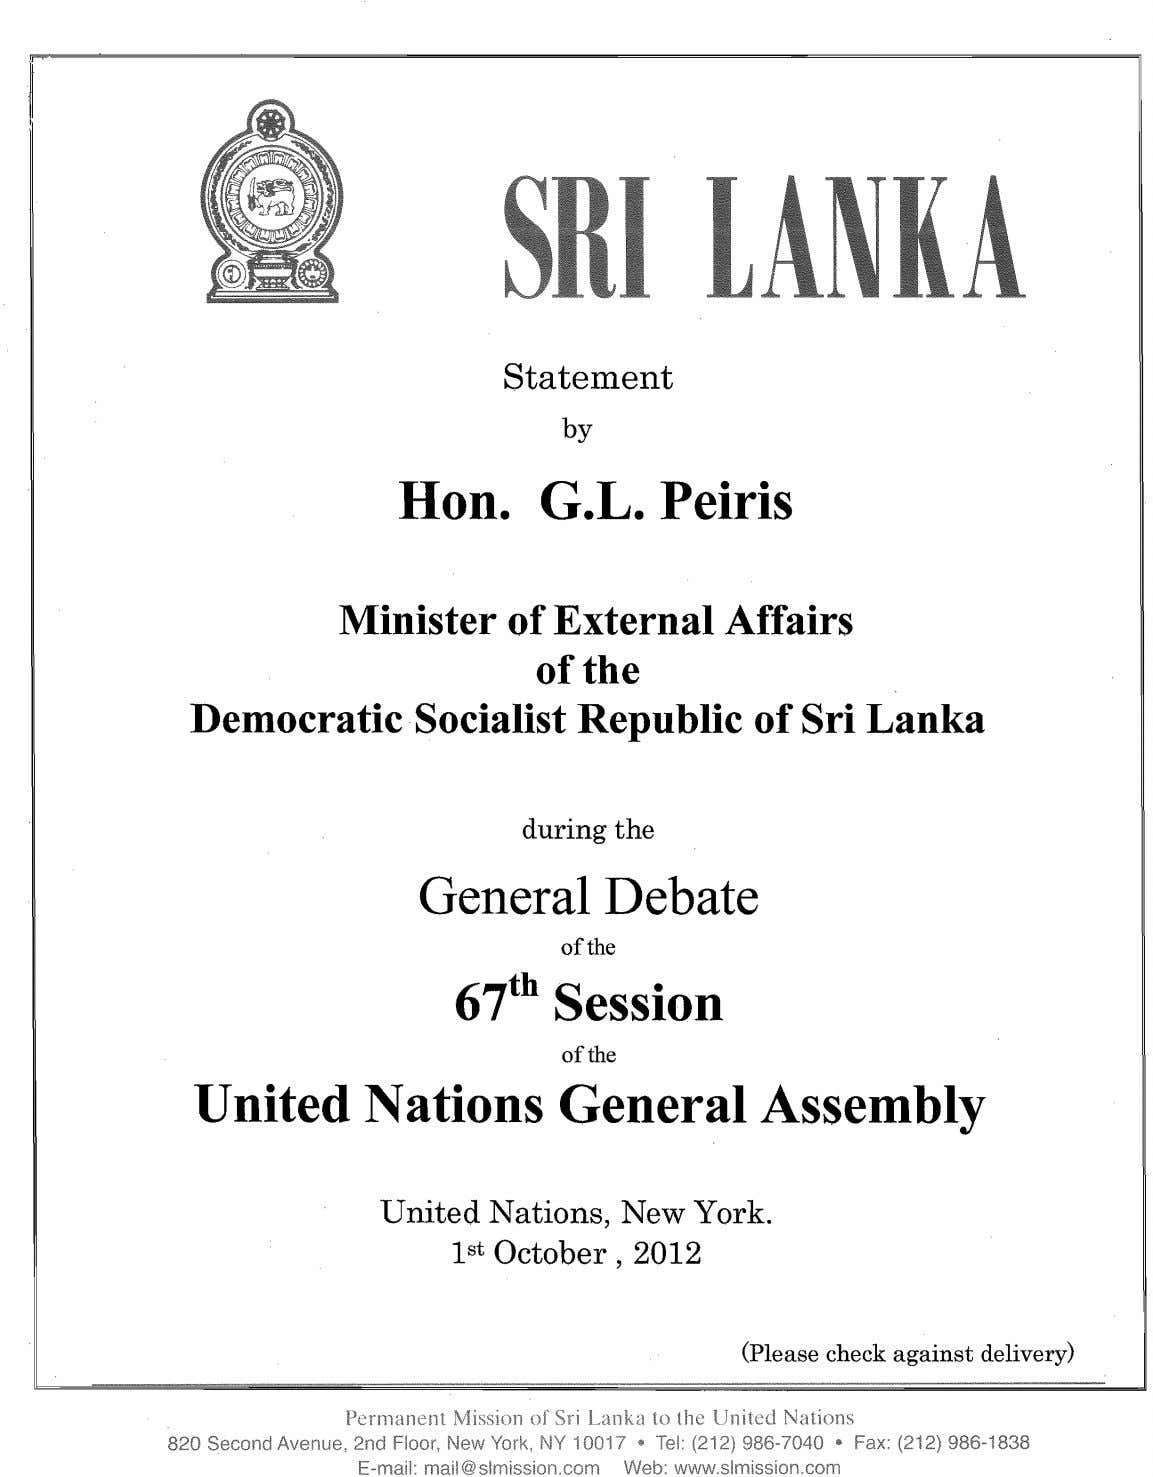 Statement by Hen. G.L. Peiris Minister of External Affairs of the Democratic Socialist Republic of